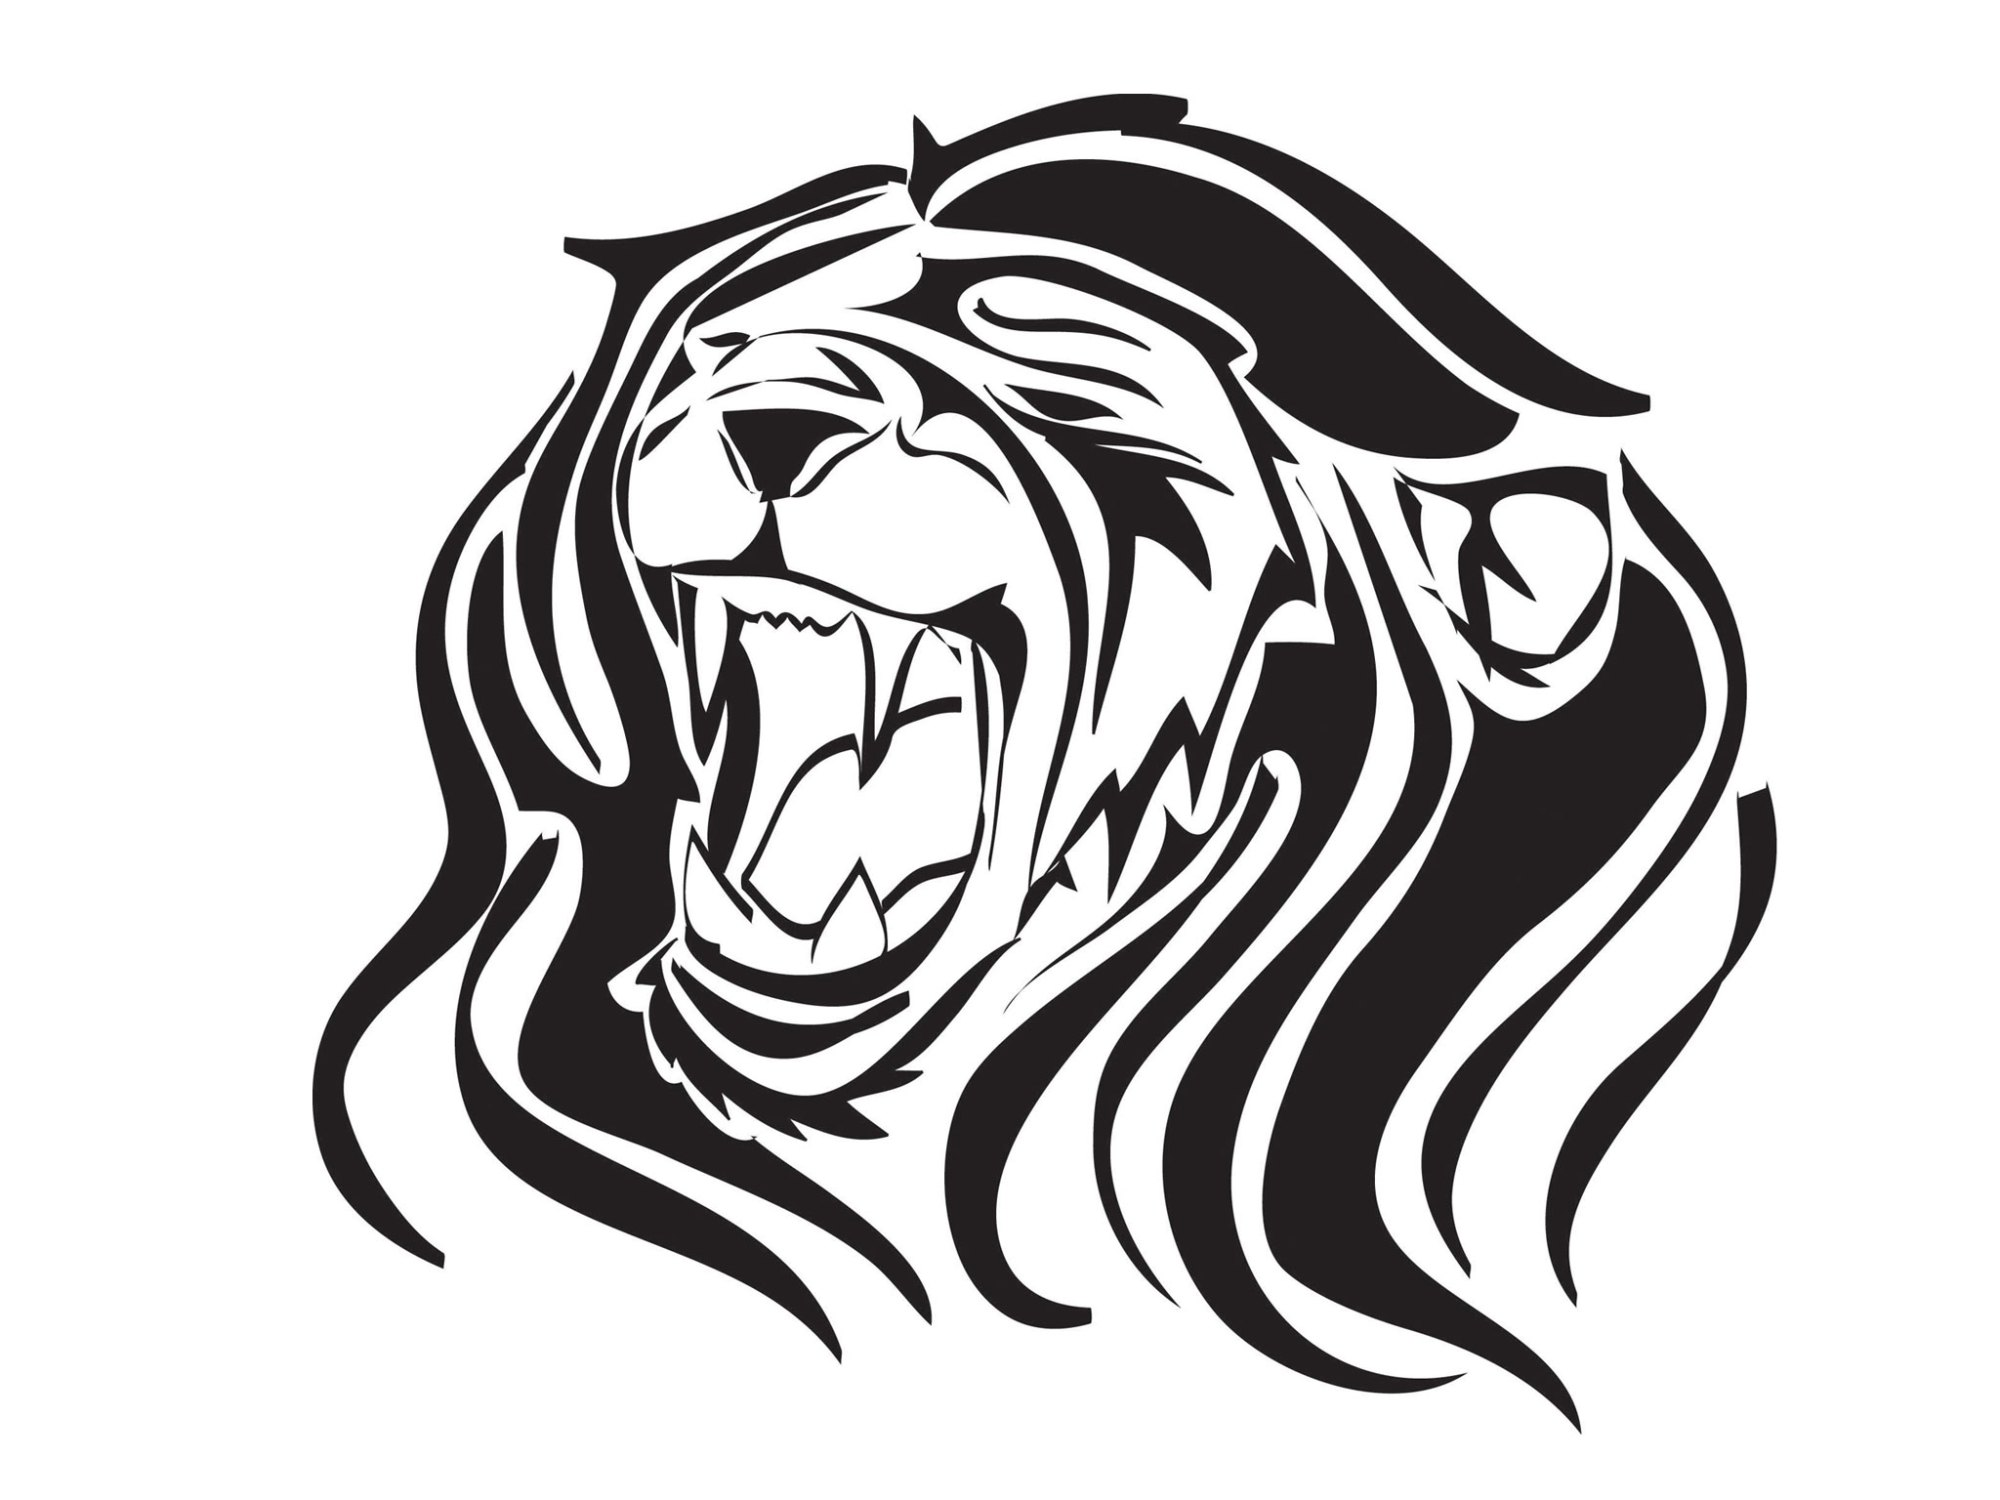 hight resolution of images of roaring lions clipart library